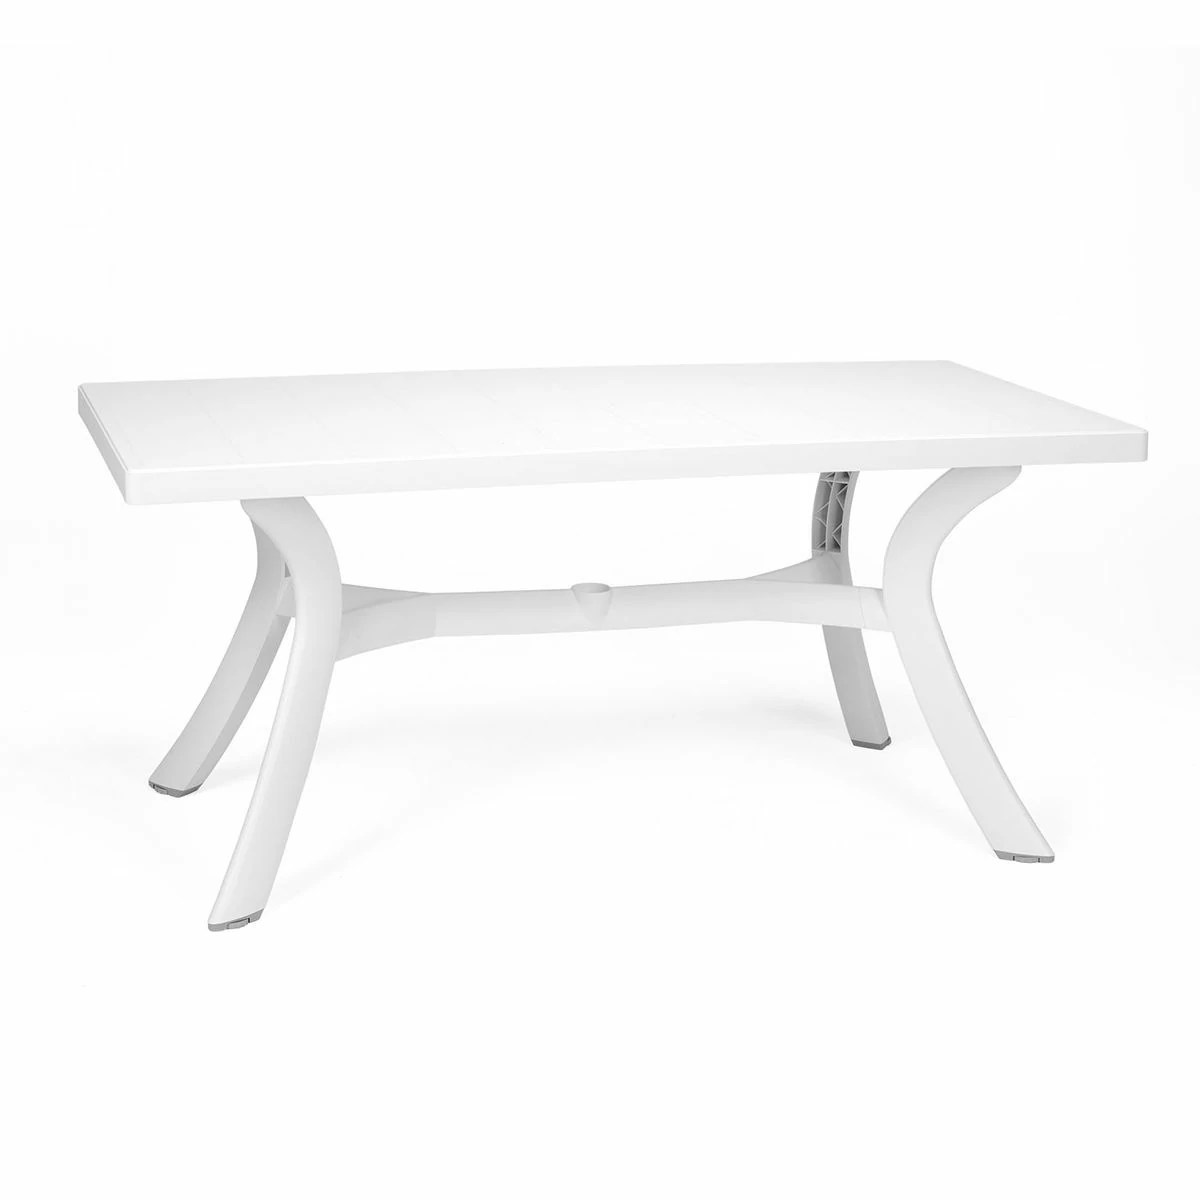 Table Pvc Exterieur Table Jardin Plastique Nardi Toscana 160 Zendart Design